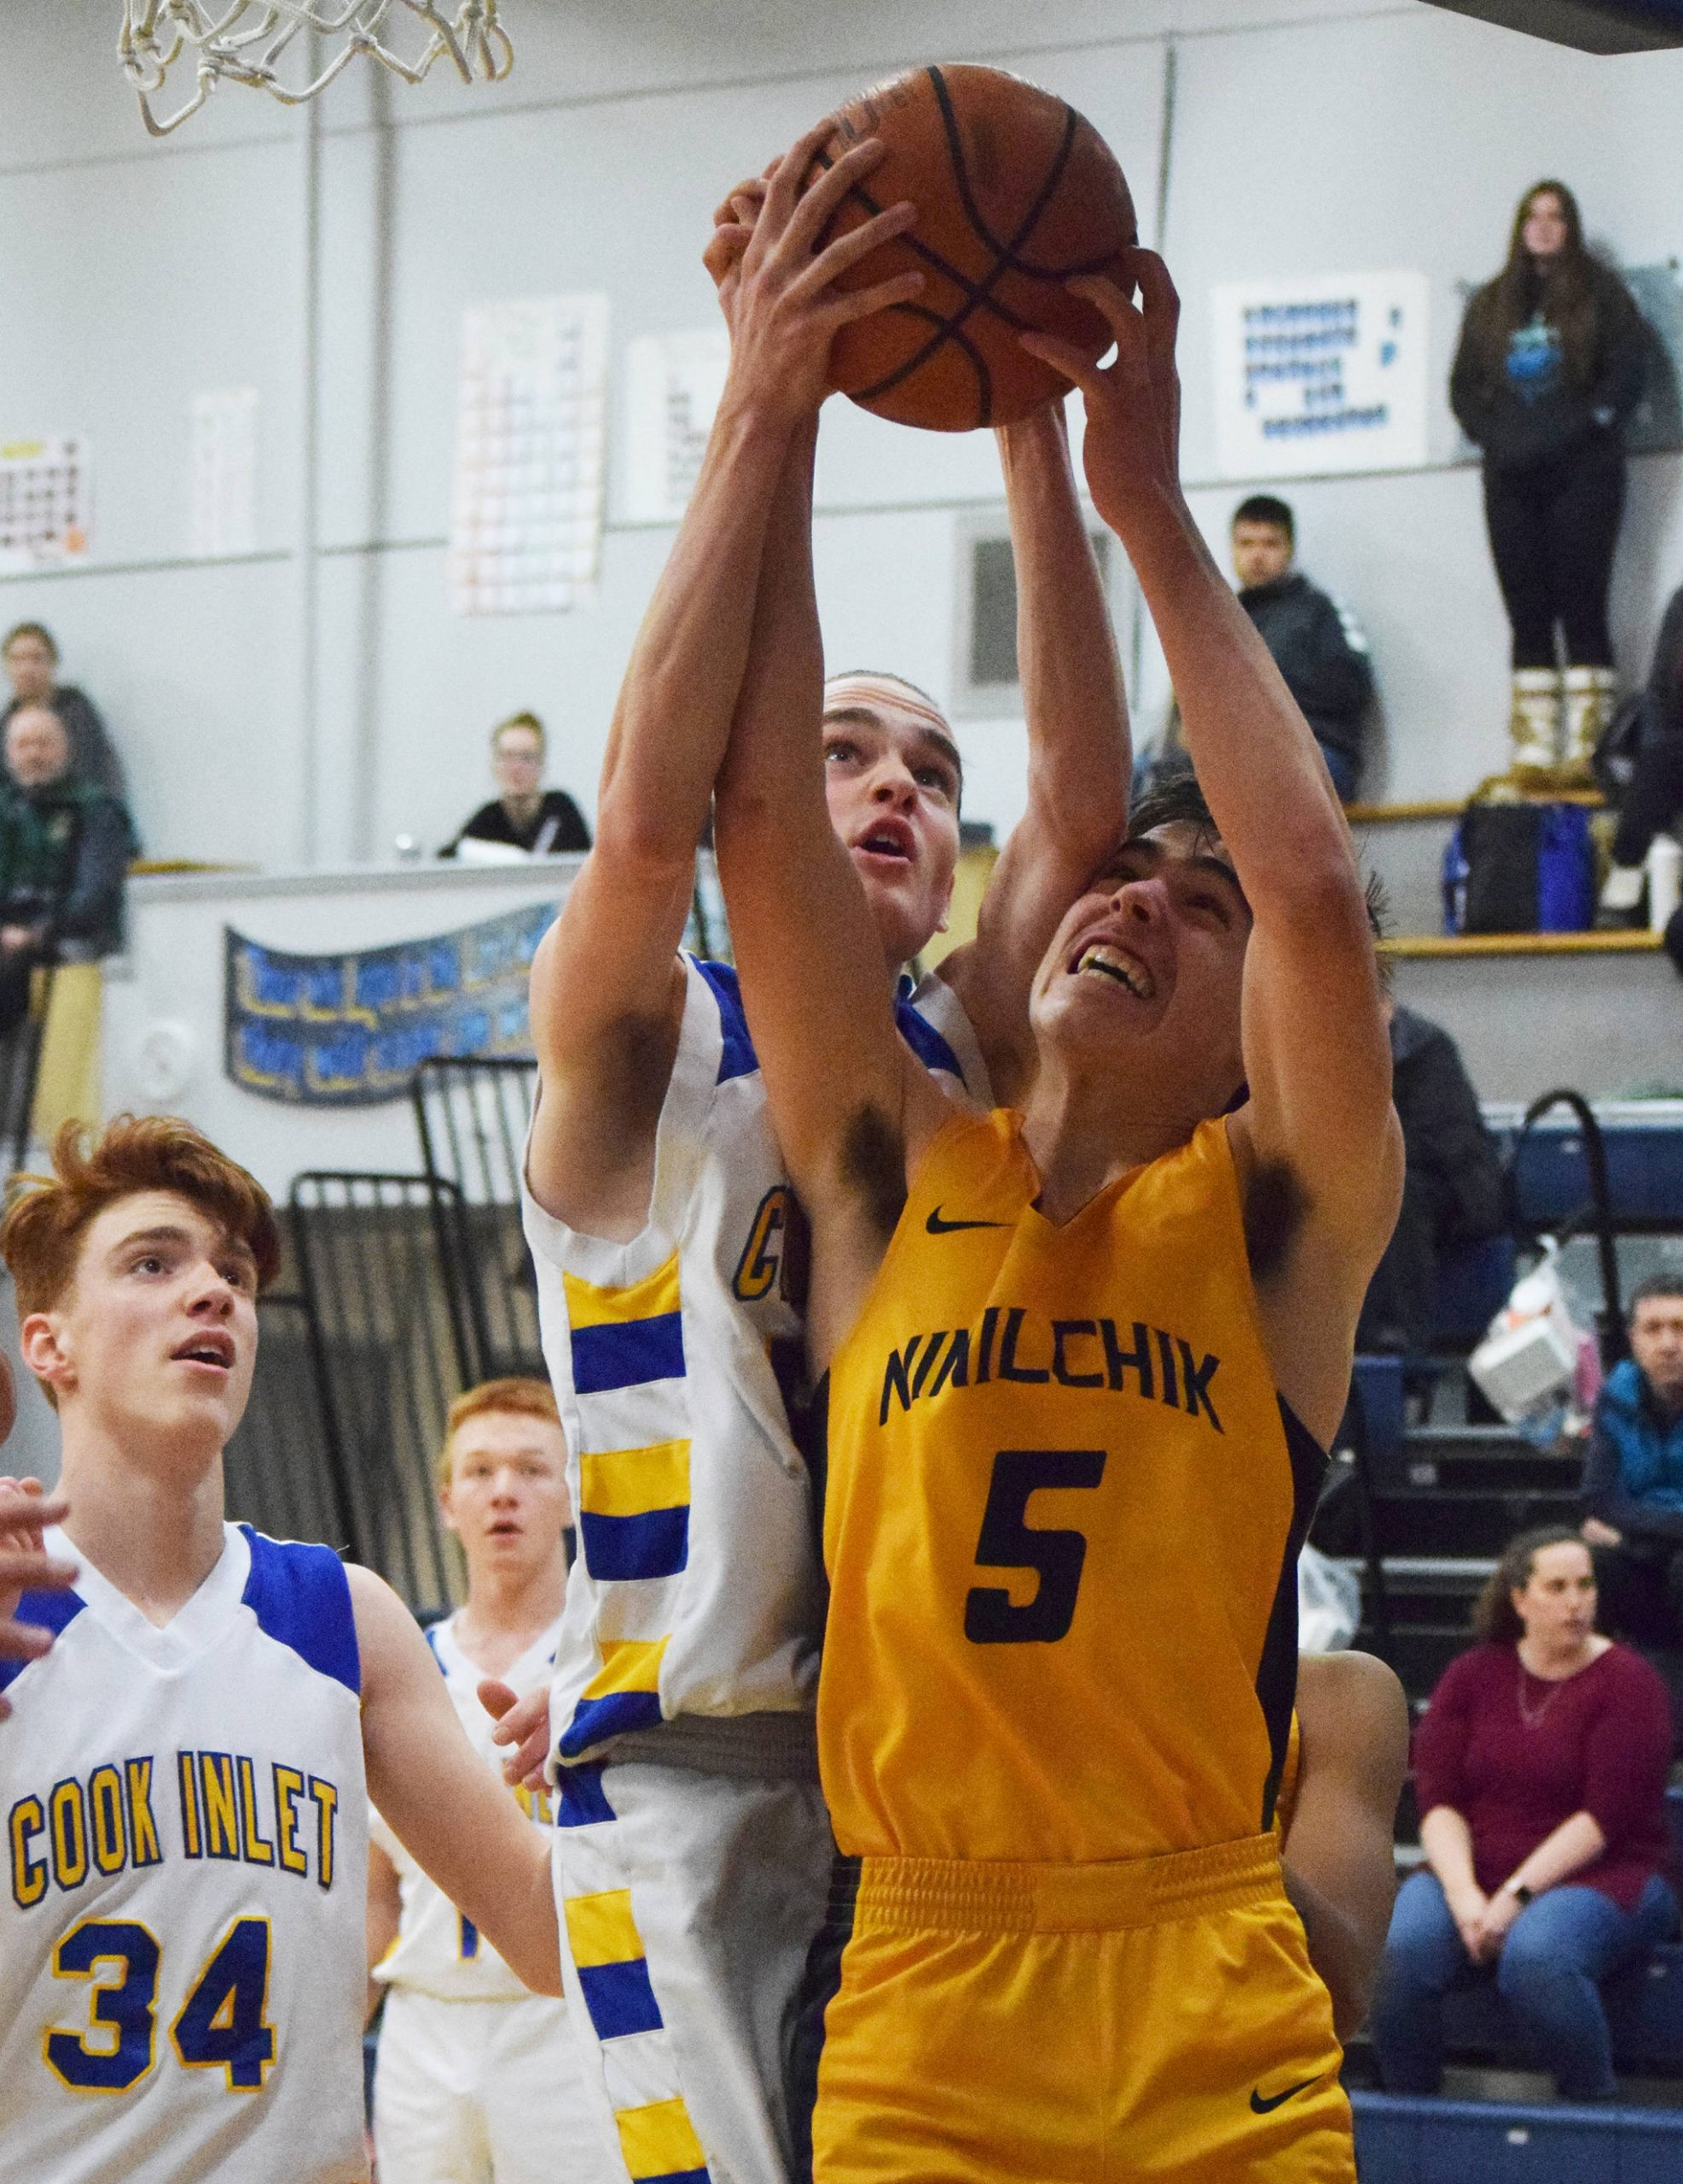 Ninilchik's Tom Nelson (5) gets a block from CIA's Josh Boyd, Tuesday, Jan. 7, 2020, at Cook Inlet Academy in Soldotna, Alaska. (Photo by Joey Klecka/Peninsula Clarion)